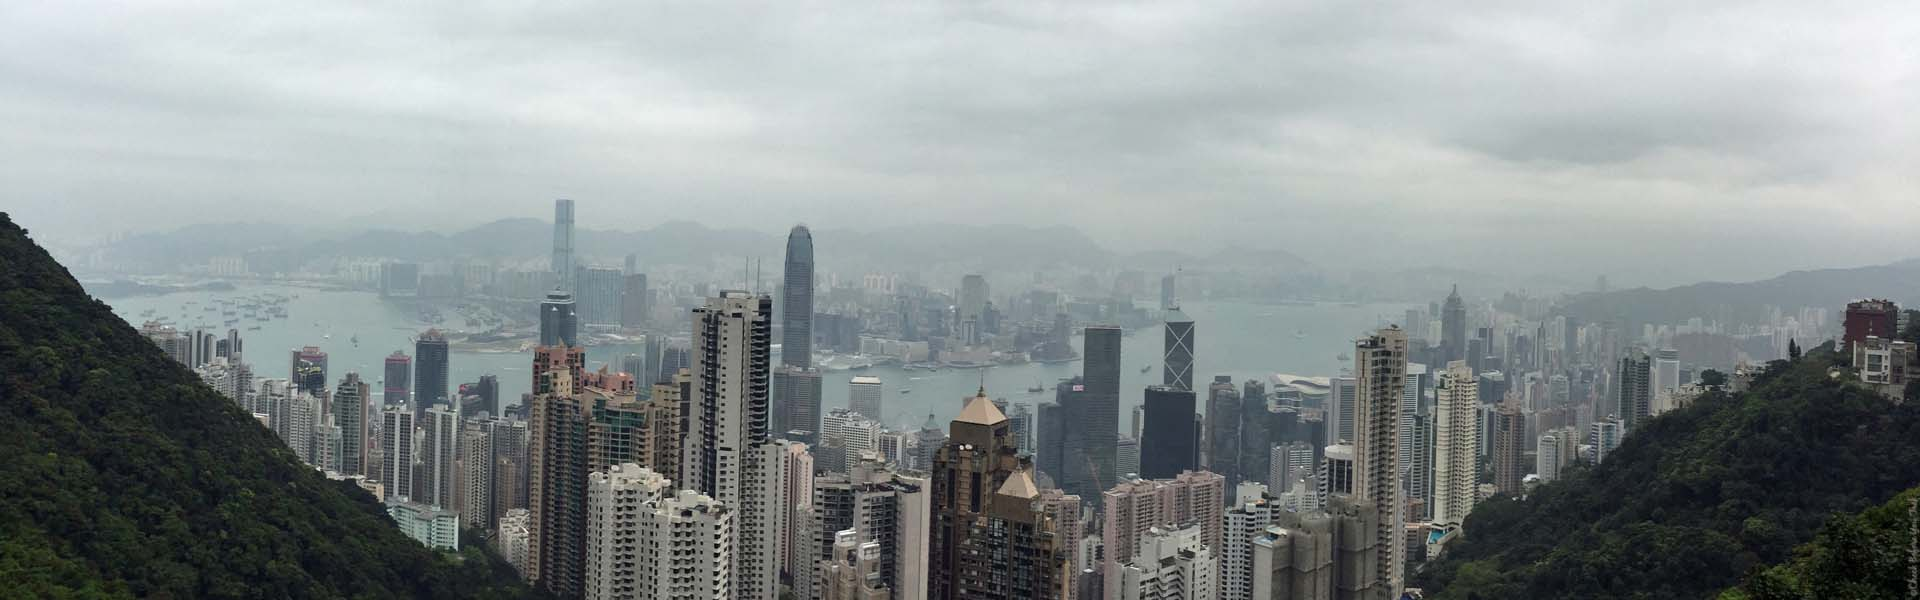 View of Hong Kong from Victoria Peak - Hong Kong Island, Hong Kong, China